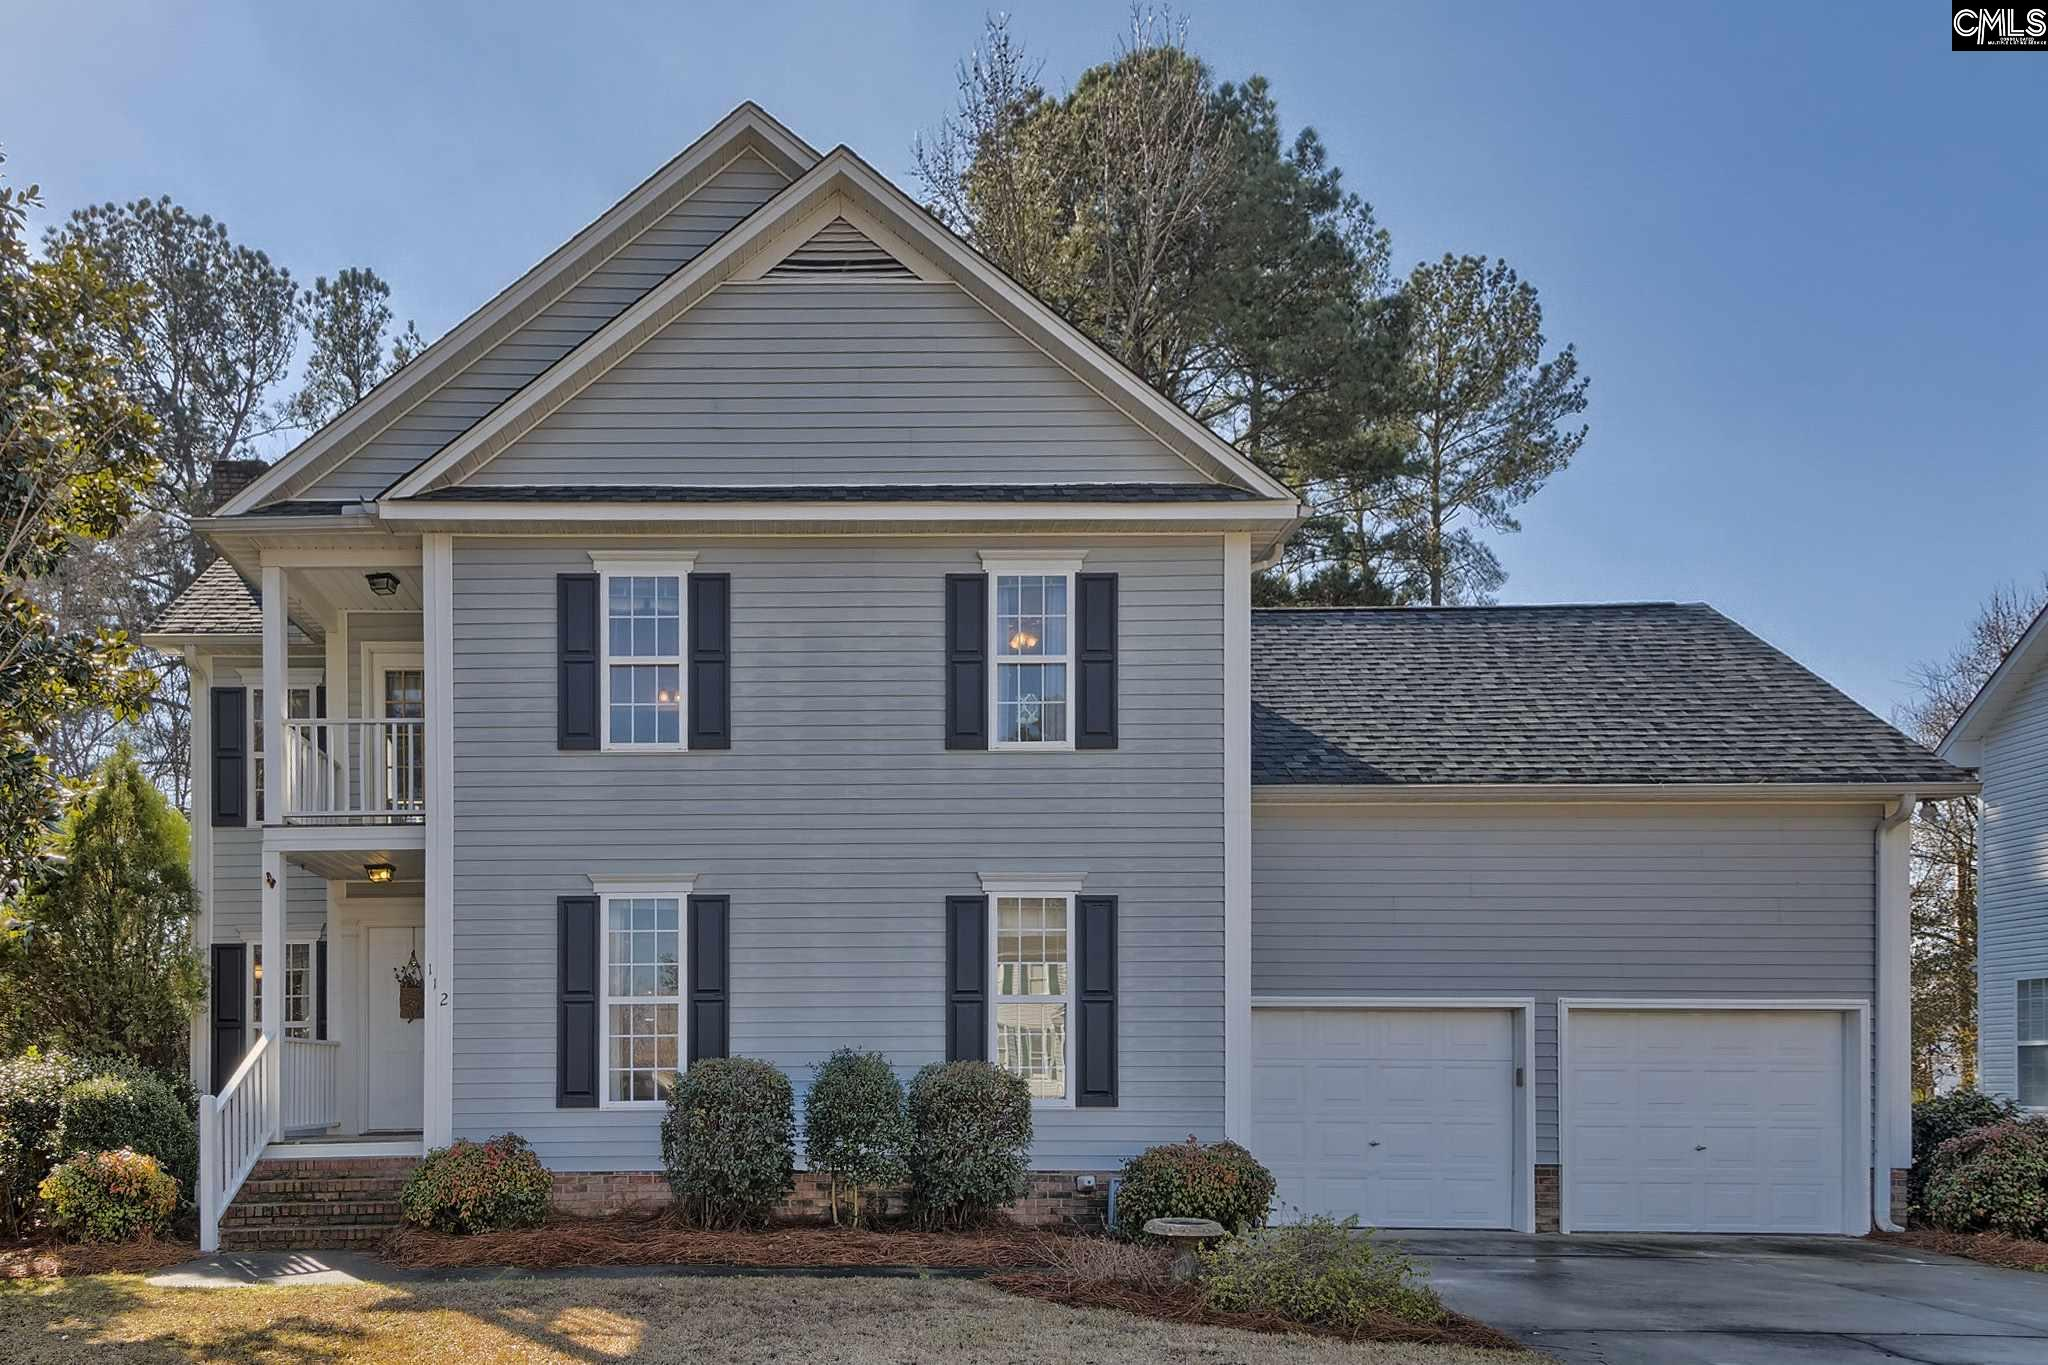 112 Ridgecrest Lexington, SC 29072